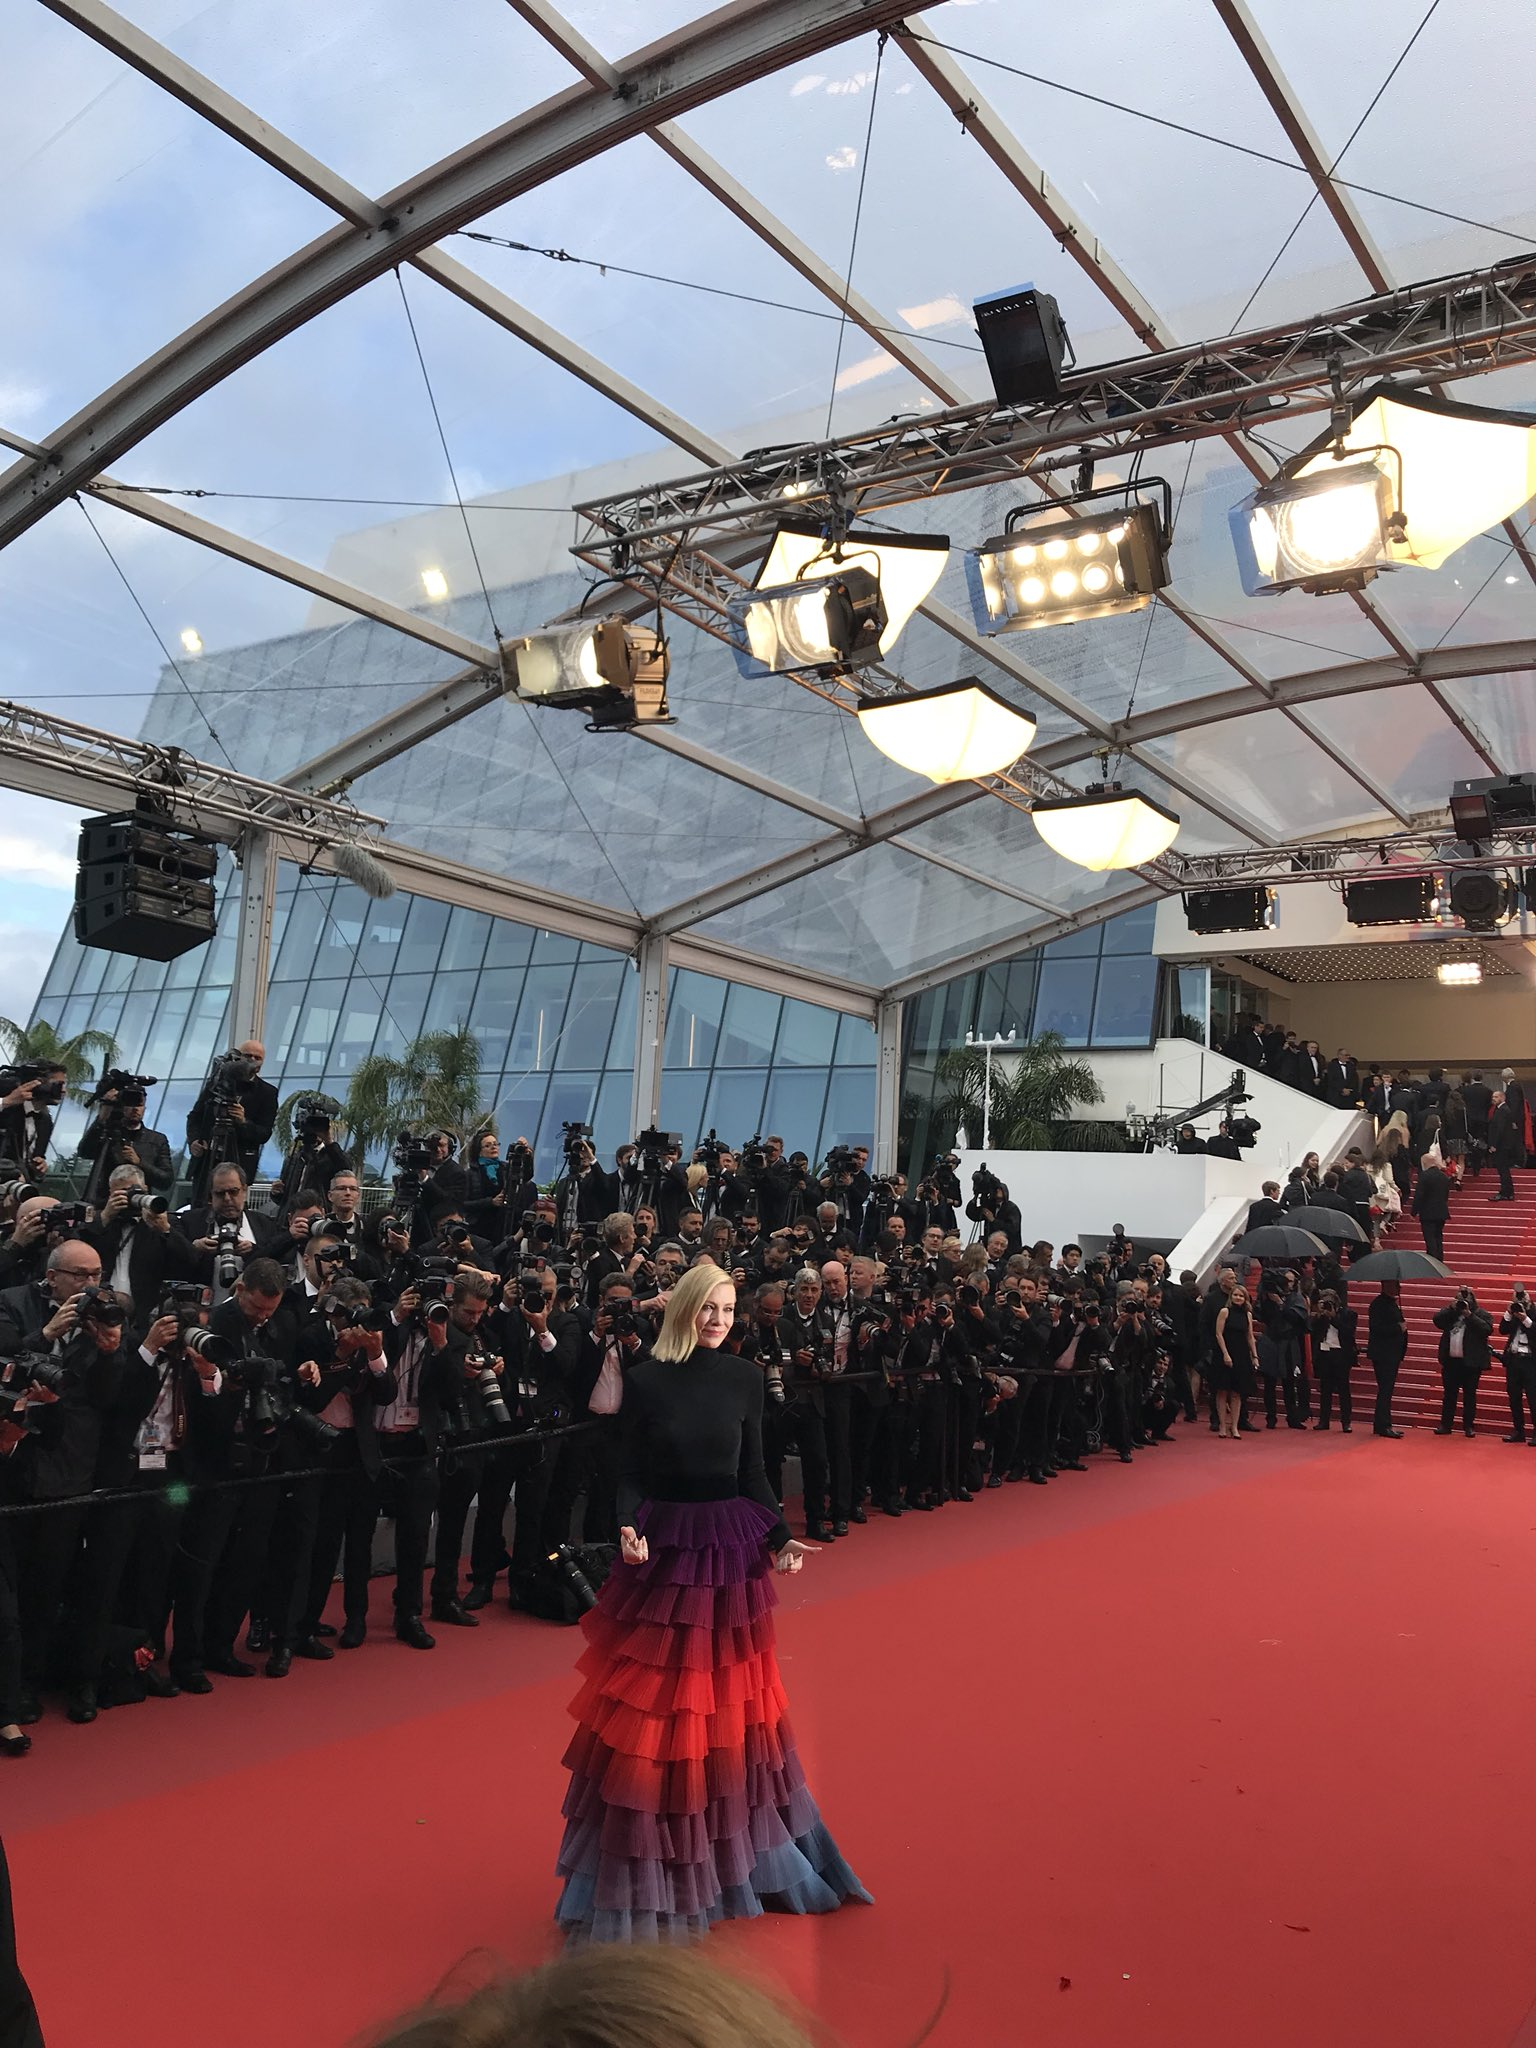 There's Cate Blanchett. #Cannes2018 https://t.co/xcZmmpDwZF